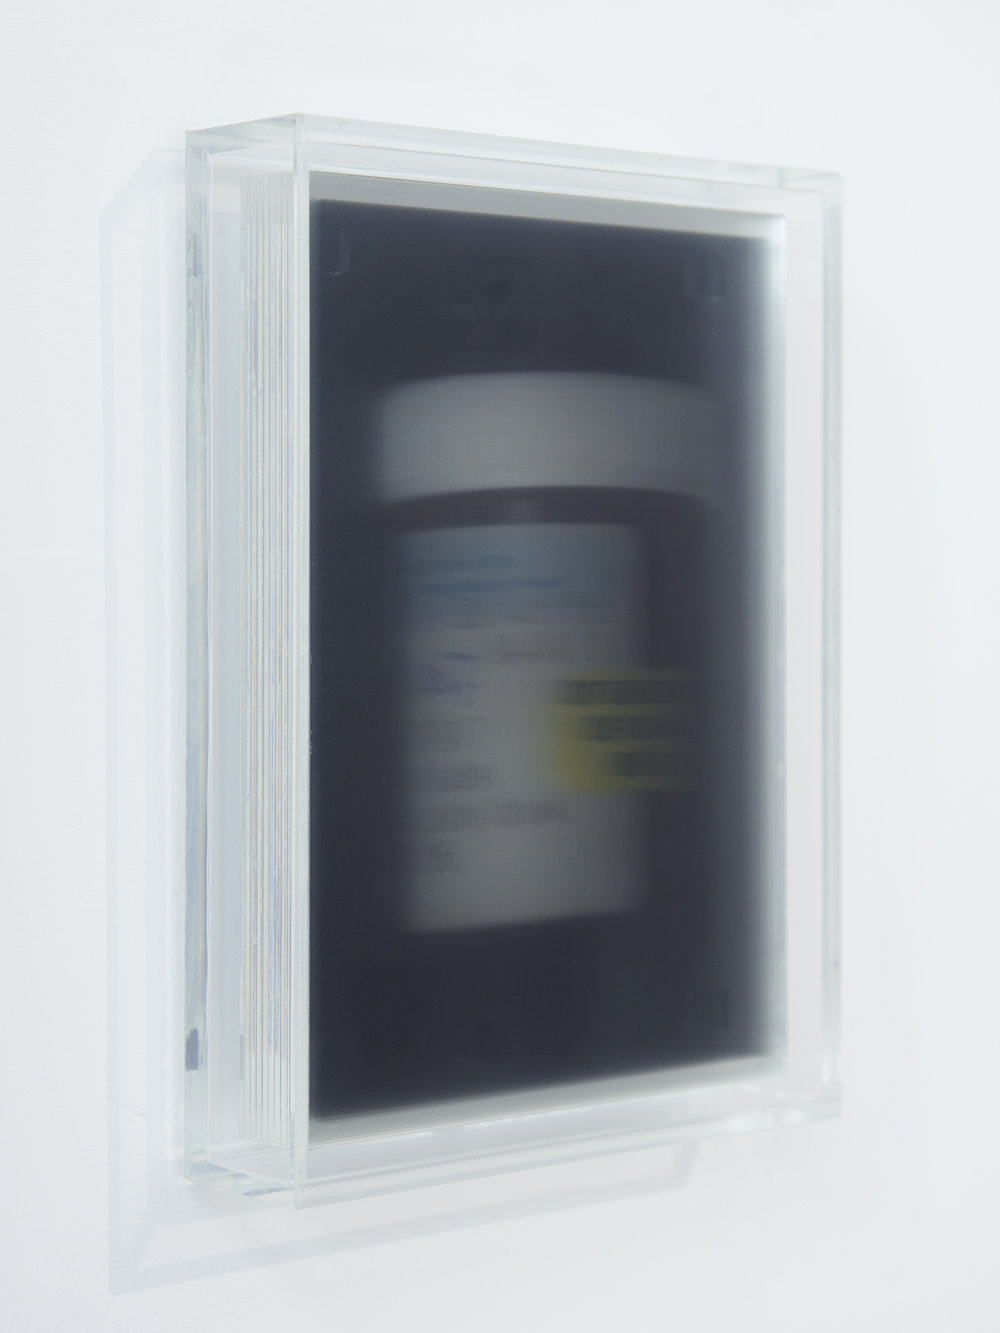 Sofie Middernacht & Maarten Alexander,  'Untitled 2 (From Like Today, But More Like Forever)',  2018 .  8 x 23% inkjet print on acetate, between 9 x 2mm Perspex, 22,5 x 16,3 x 4,5 cm (framed), ed. #3.